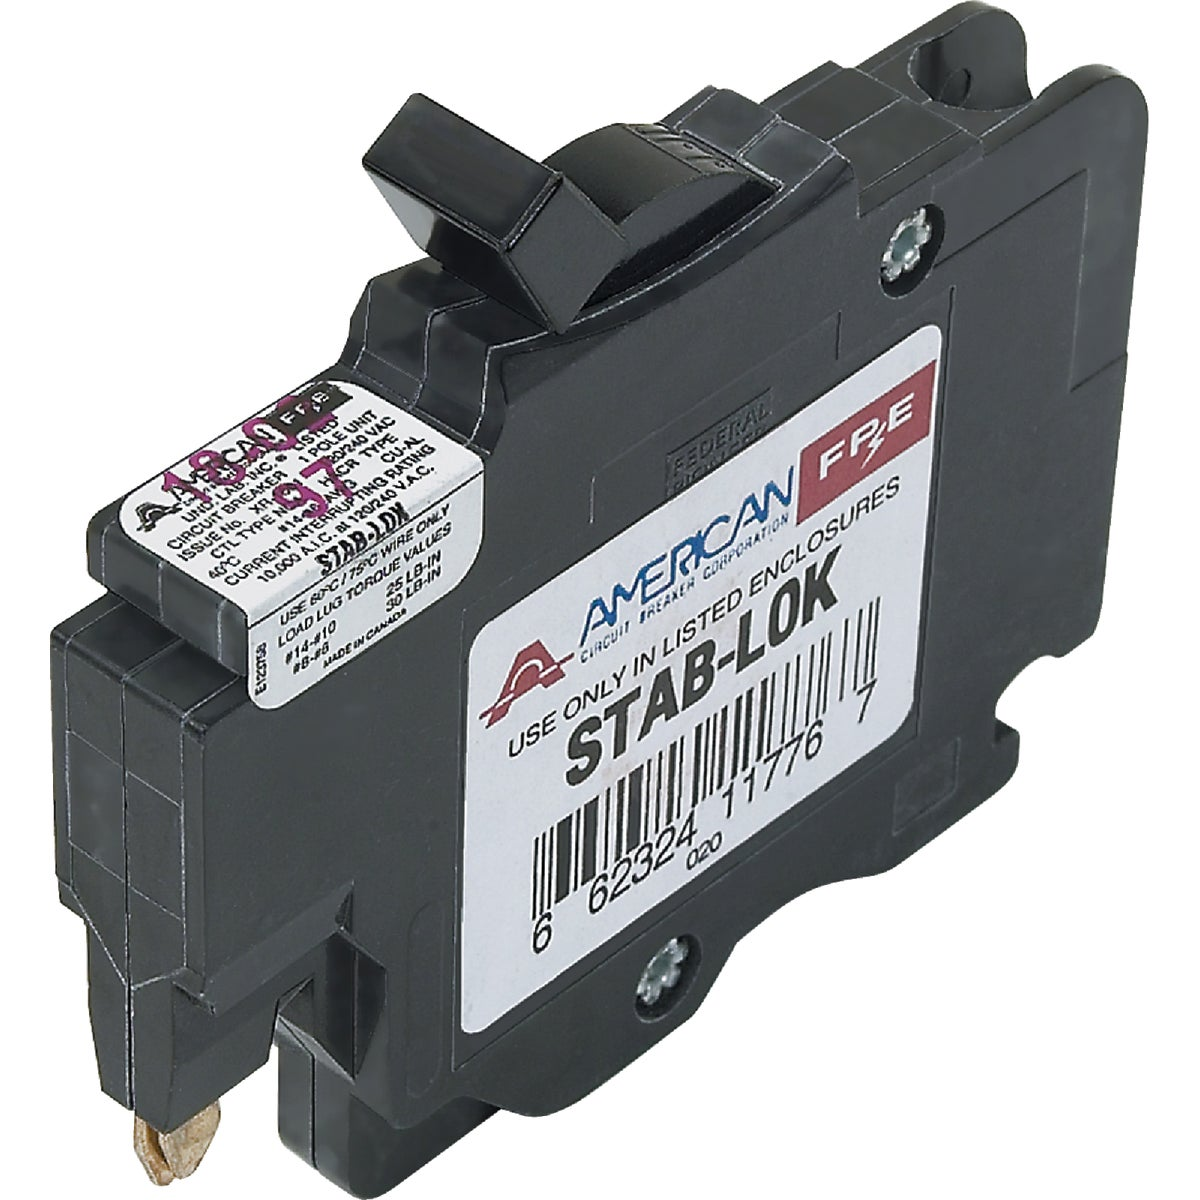 15A SP CIRCUIT BREAKER - UBIF015N by Connecticut Electric